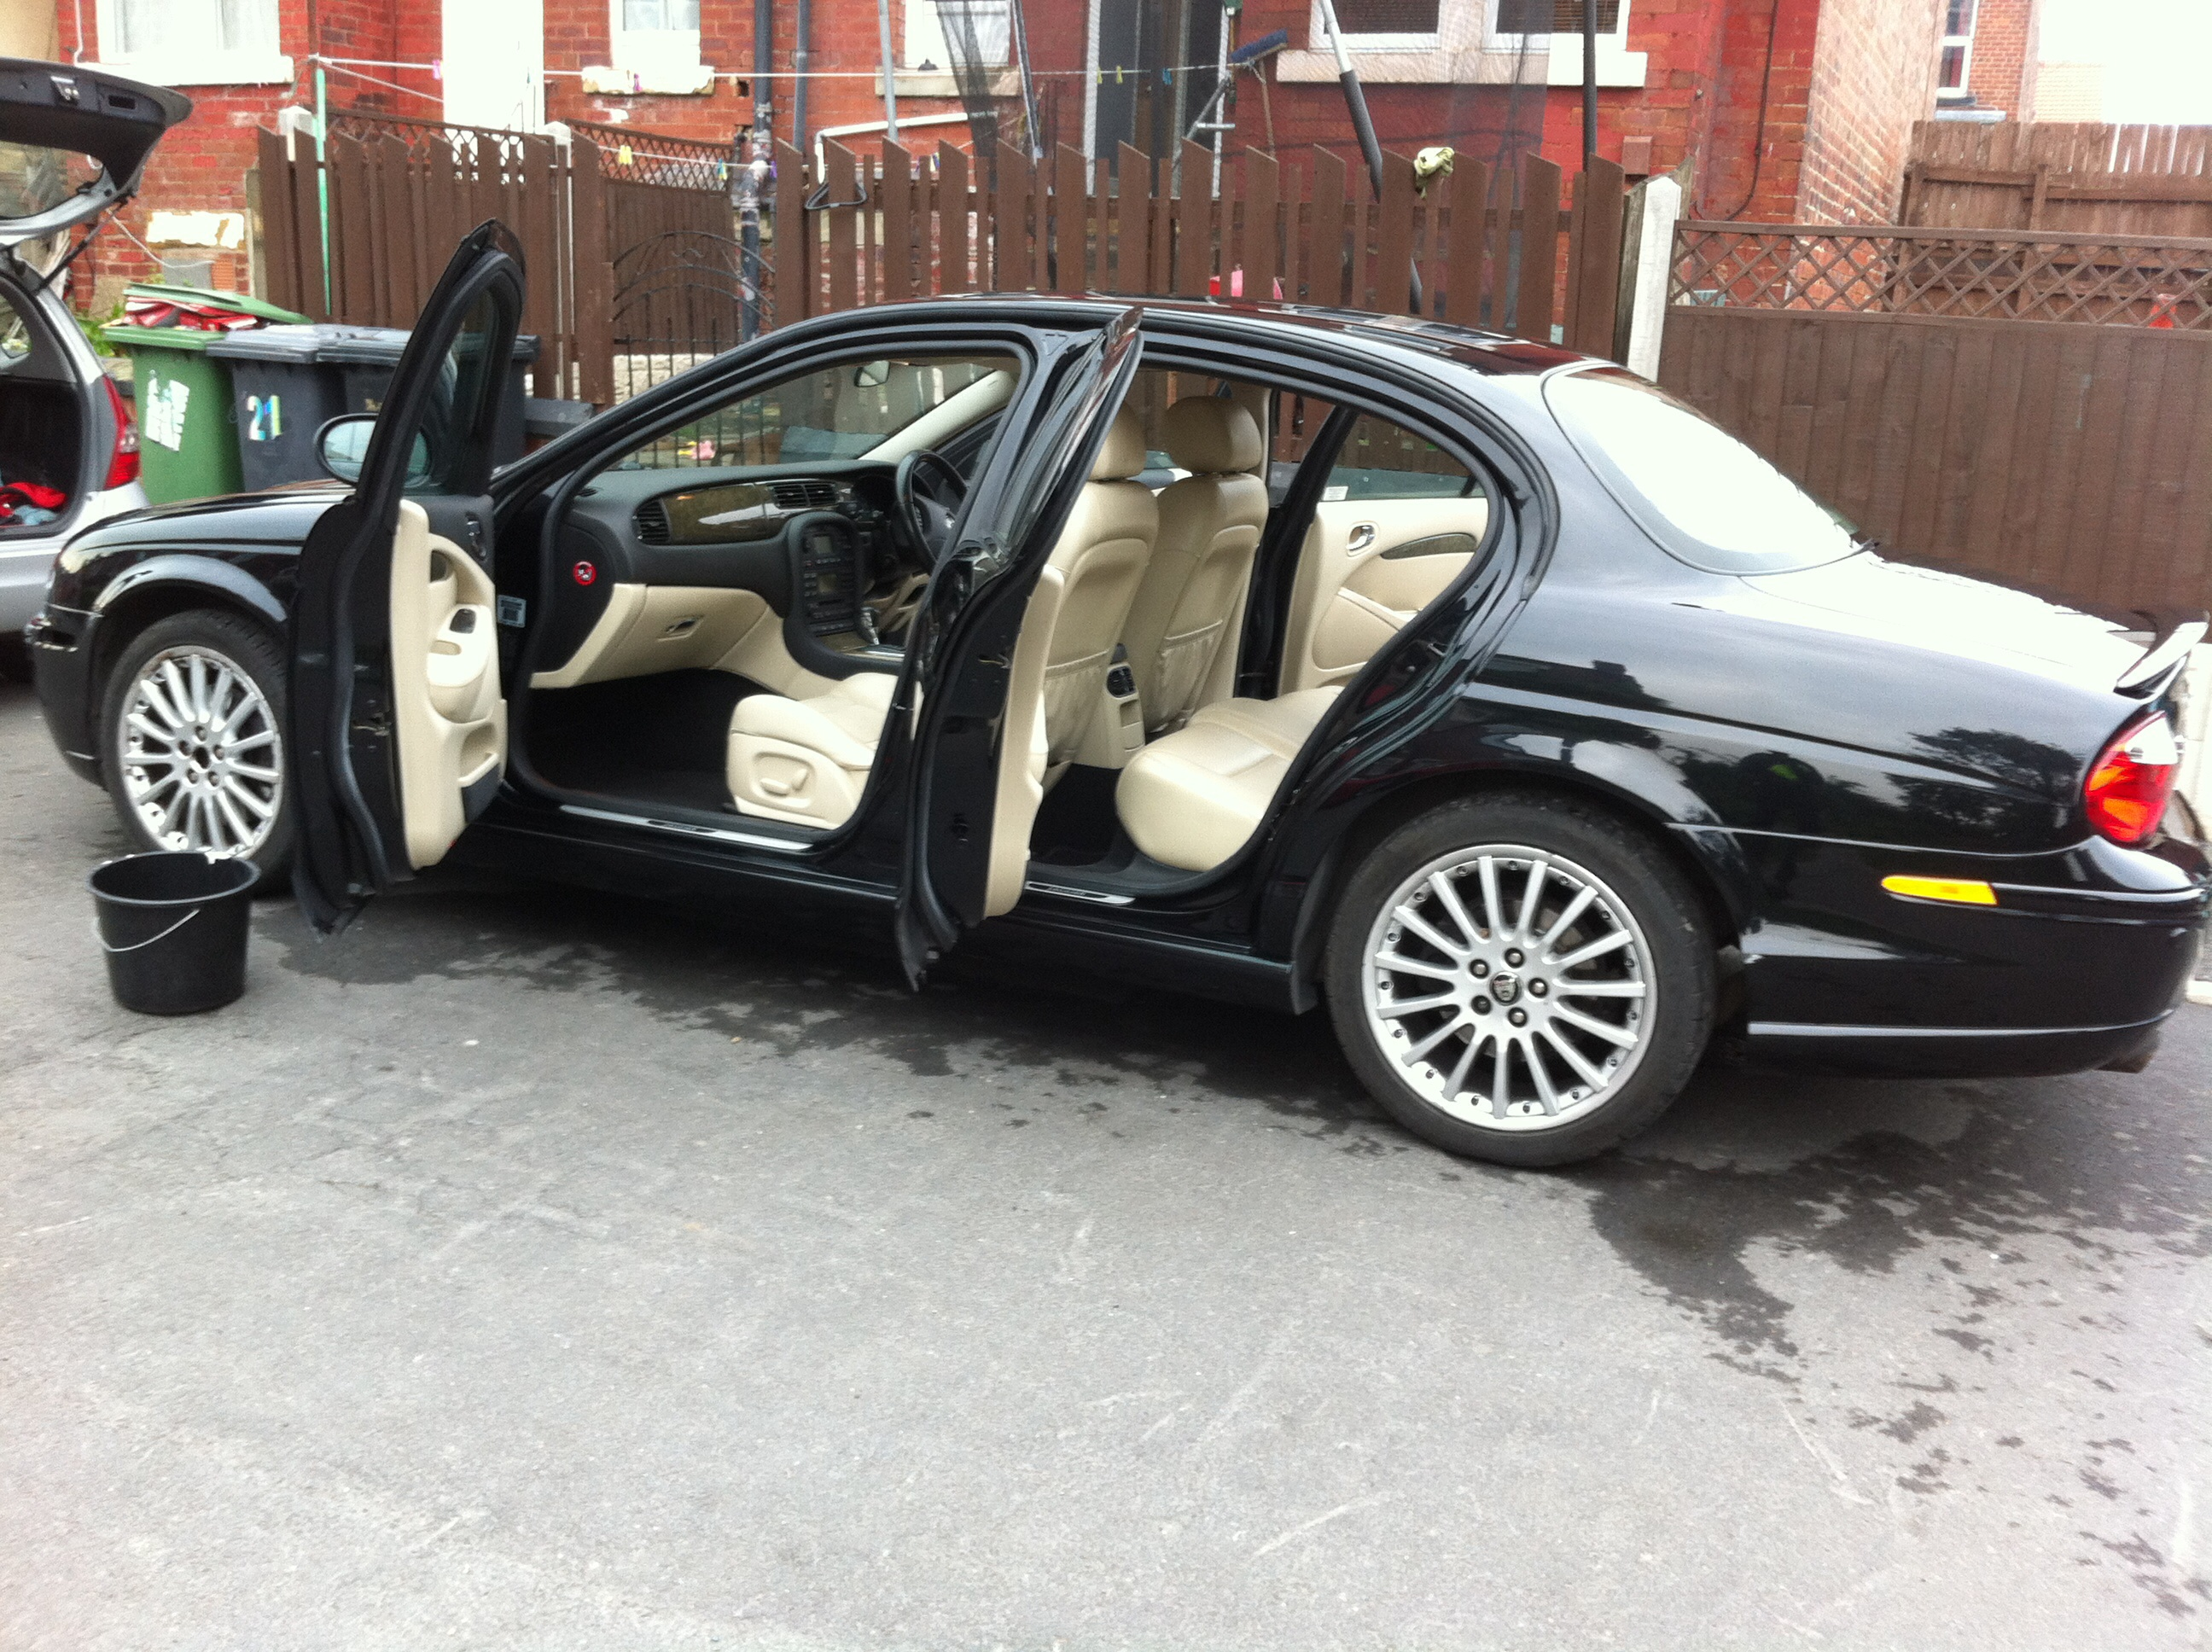 2005 jaguar x-type information.